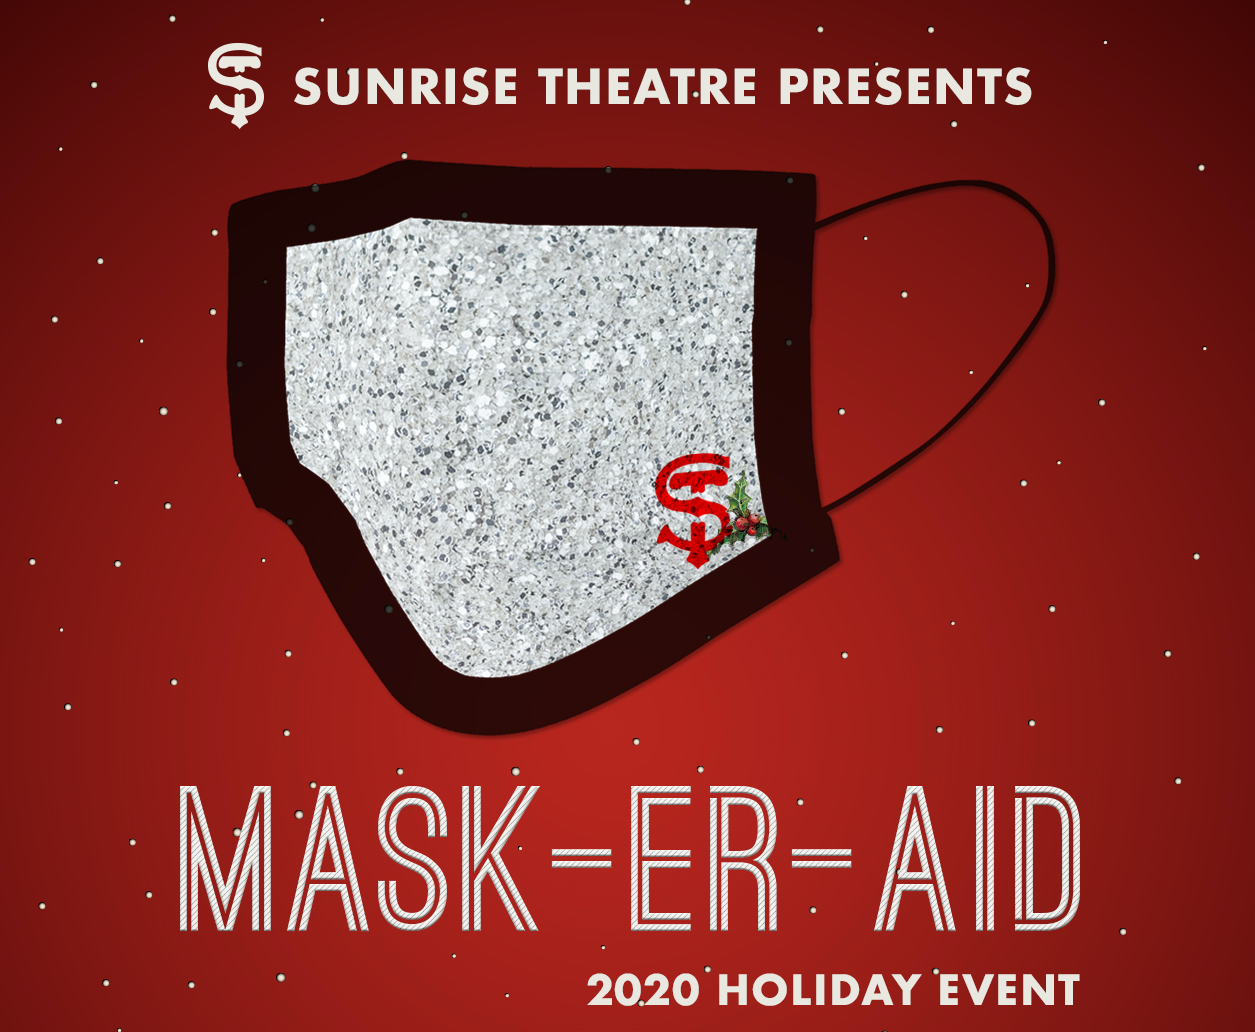 Sunrise Theatre Presents: Mask-Er-Aid 2020 Holiday Event